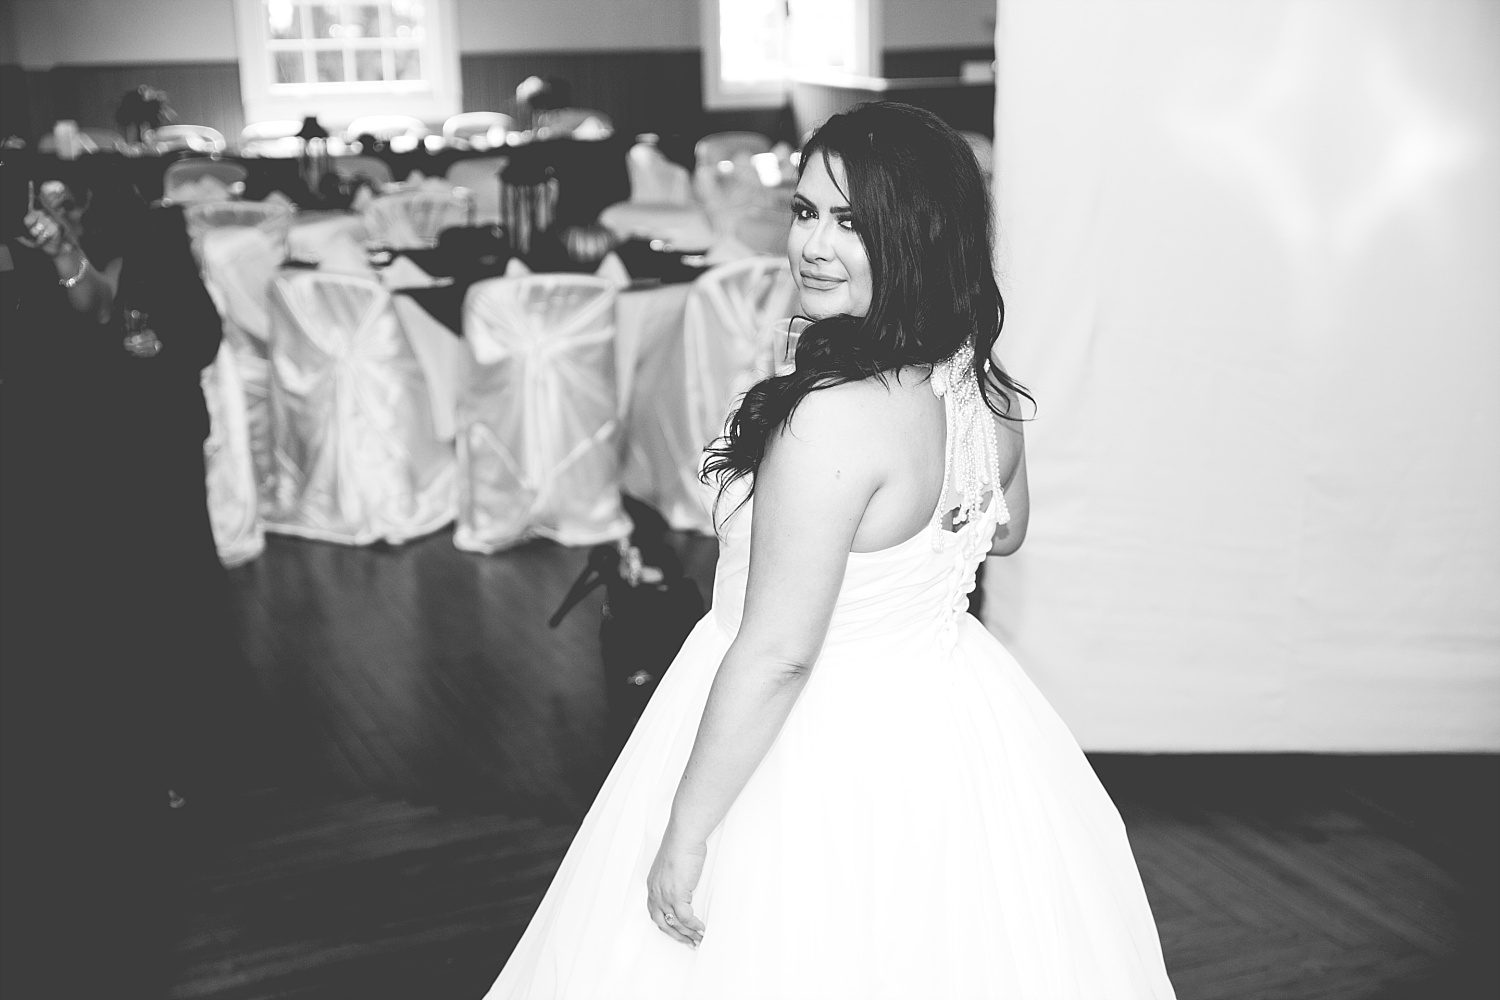 Hannah-cessna-photography-akron-cleveland-ohio-wedding-photograper_0048.jpg